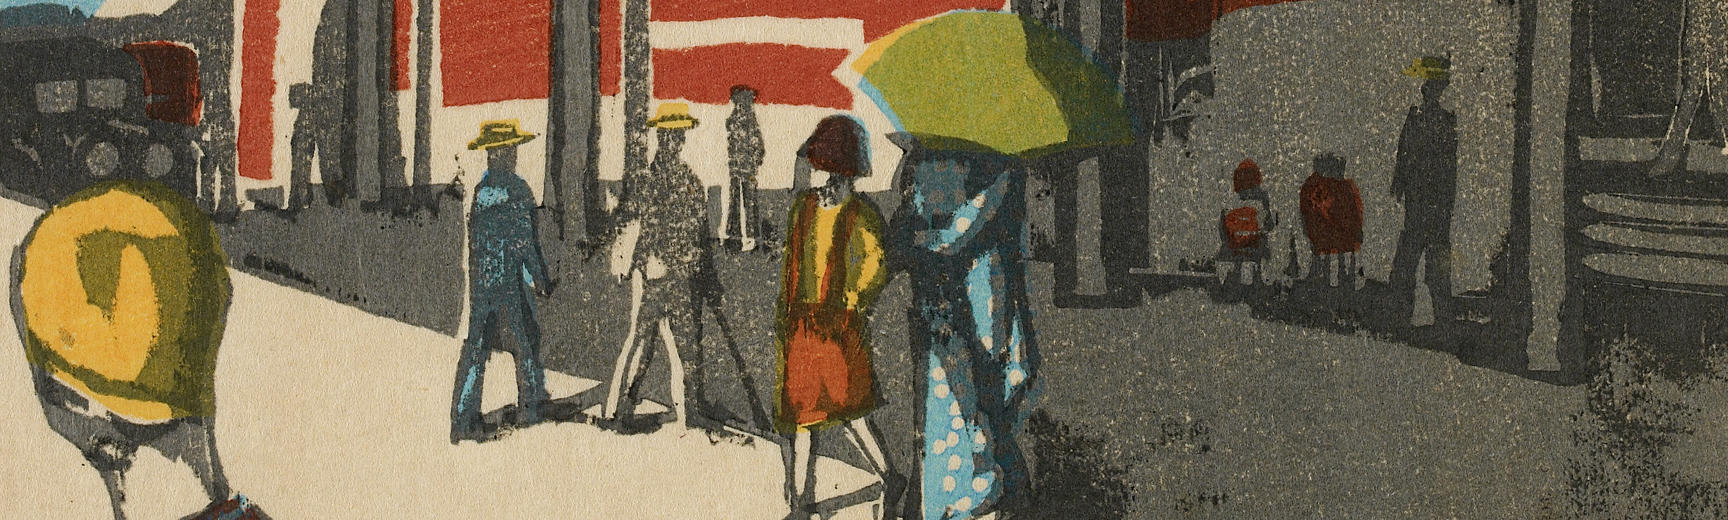 Detail from Onchi Koshiro – Tokyo Station, Scenes of Last Tokyo, 1945